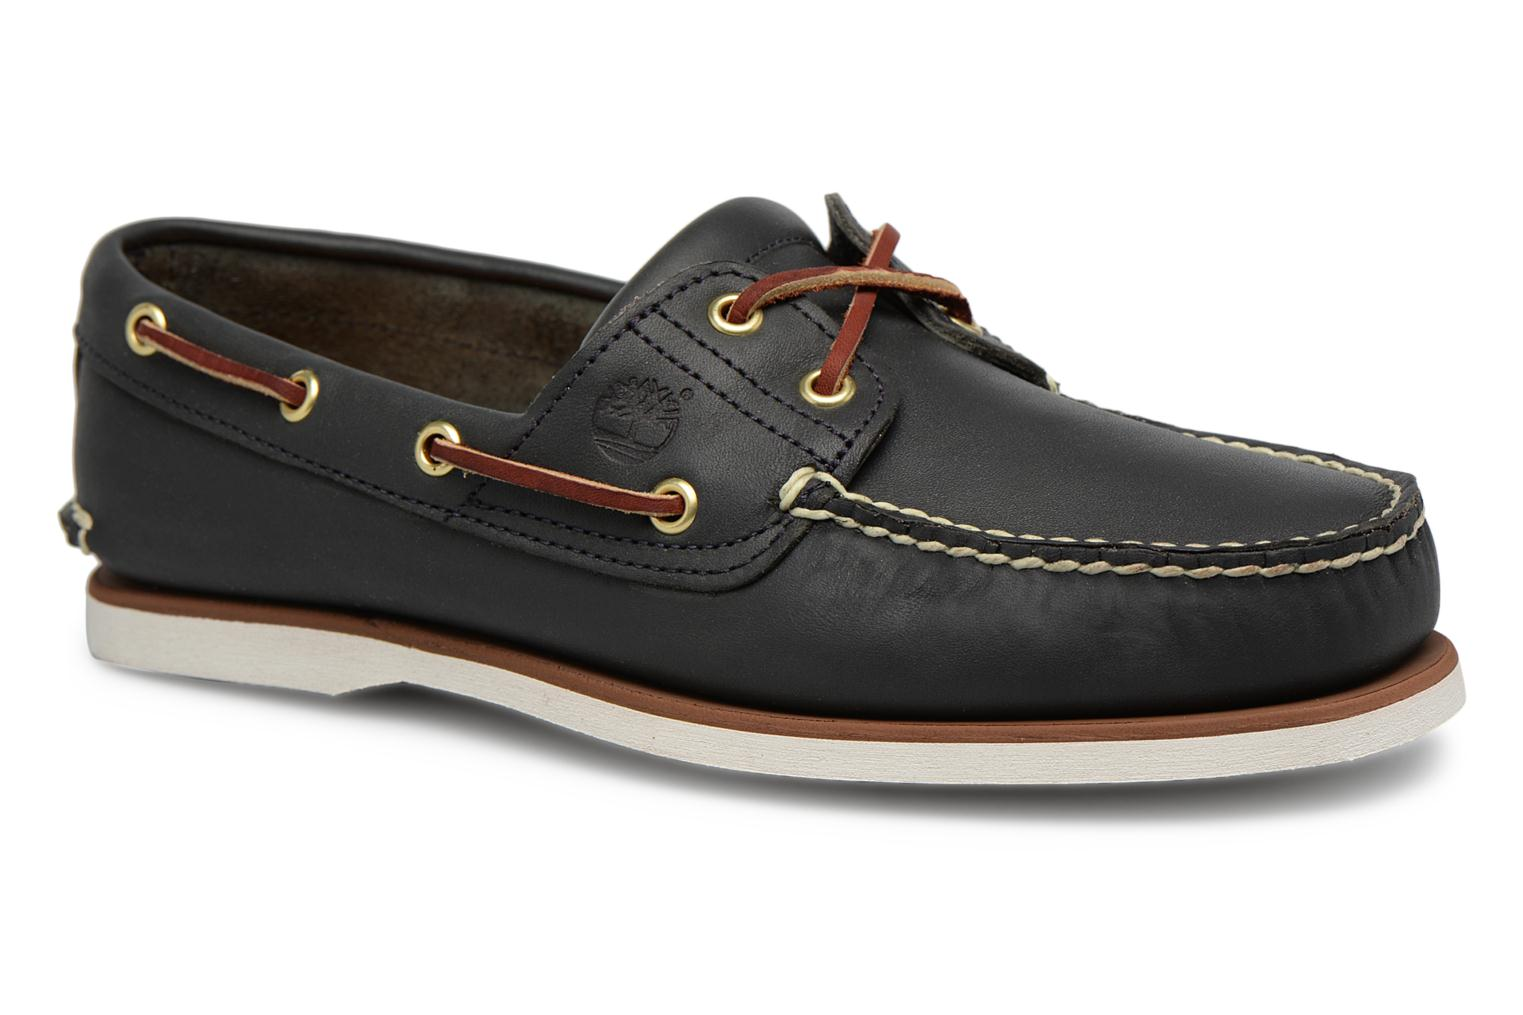 MEN'S 2 EYE BOAT SHOE Nautical Blue Wilderness